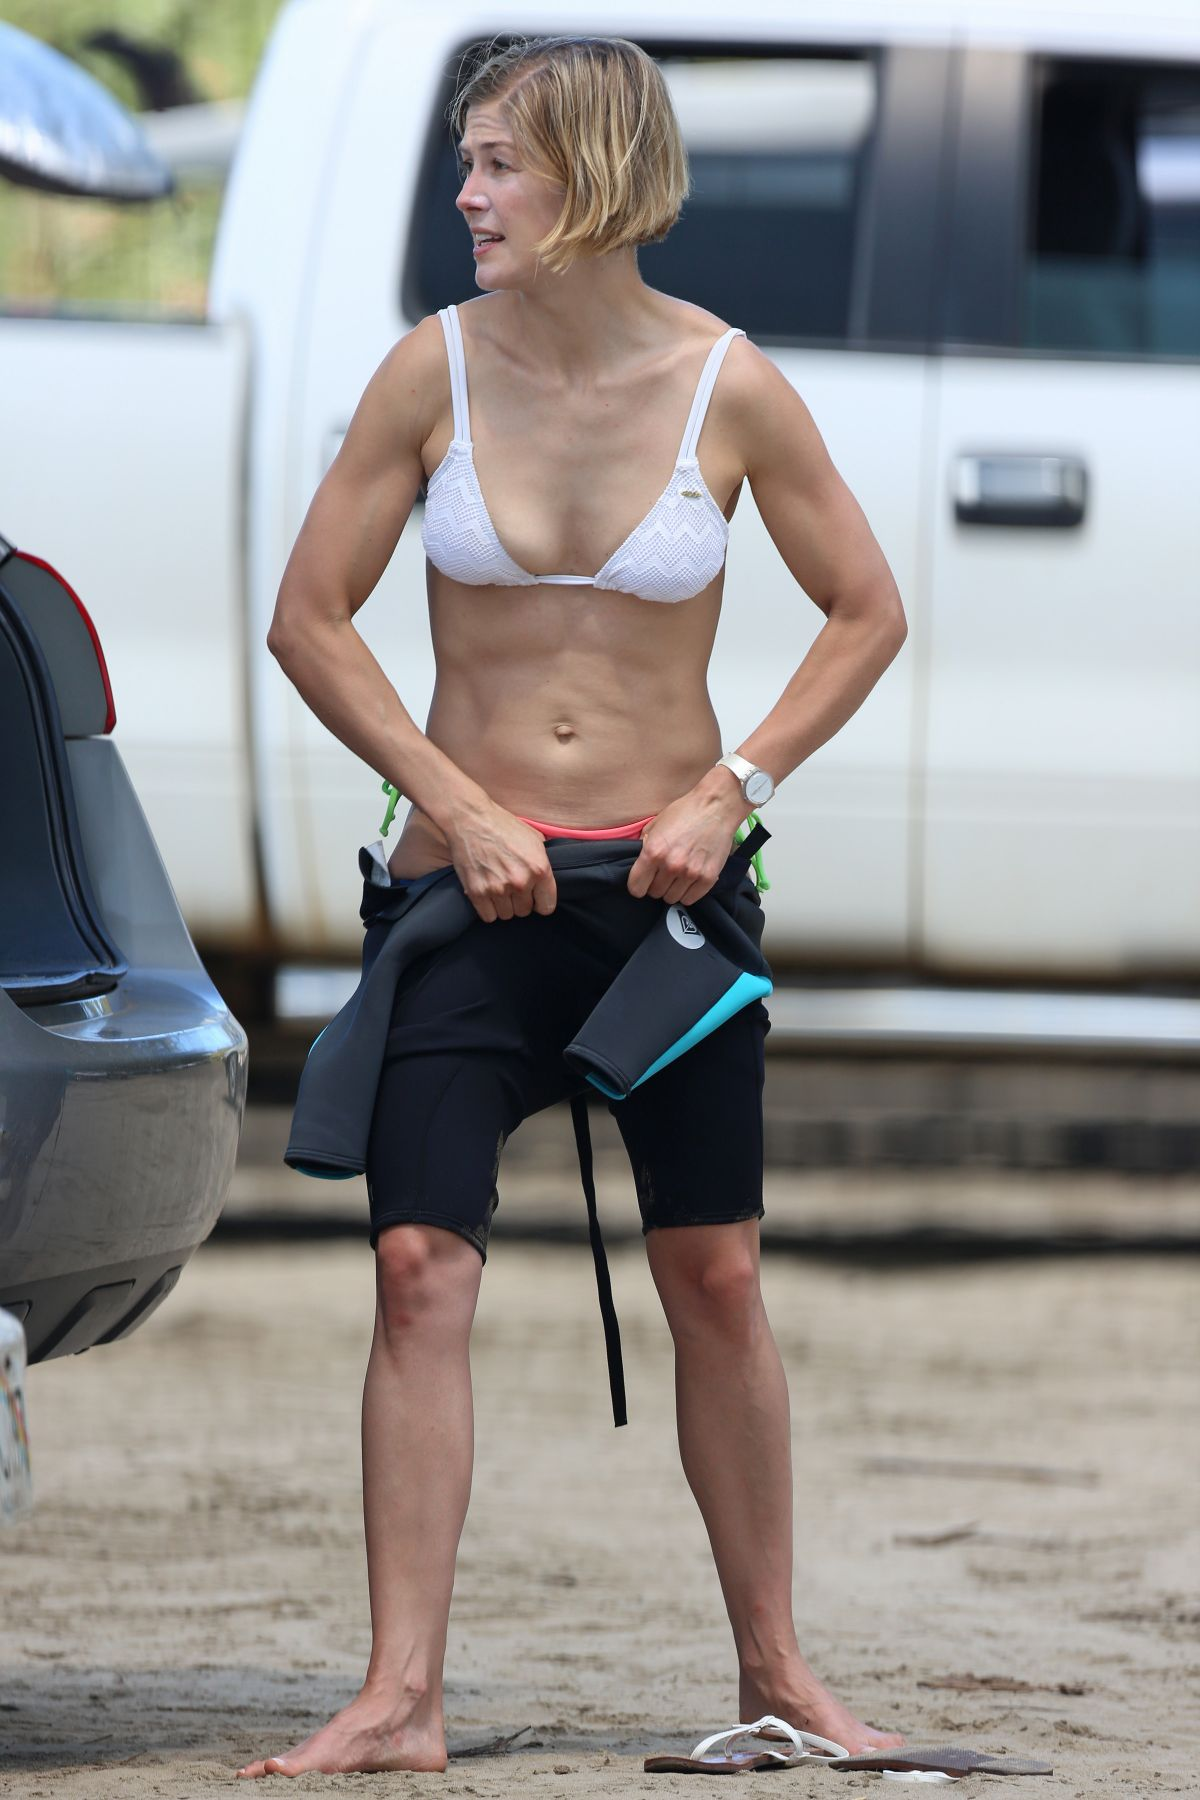 ROSAMUND PIKE in Bikini in HawaiiRosamund Pike 2014